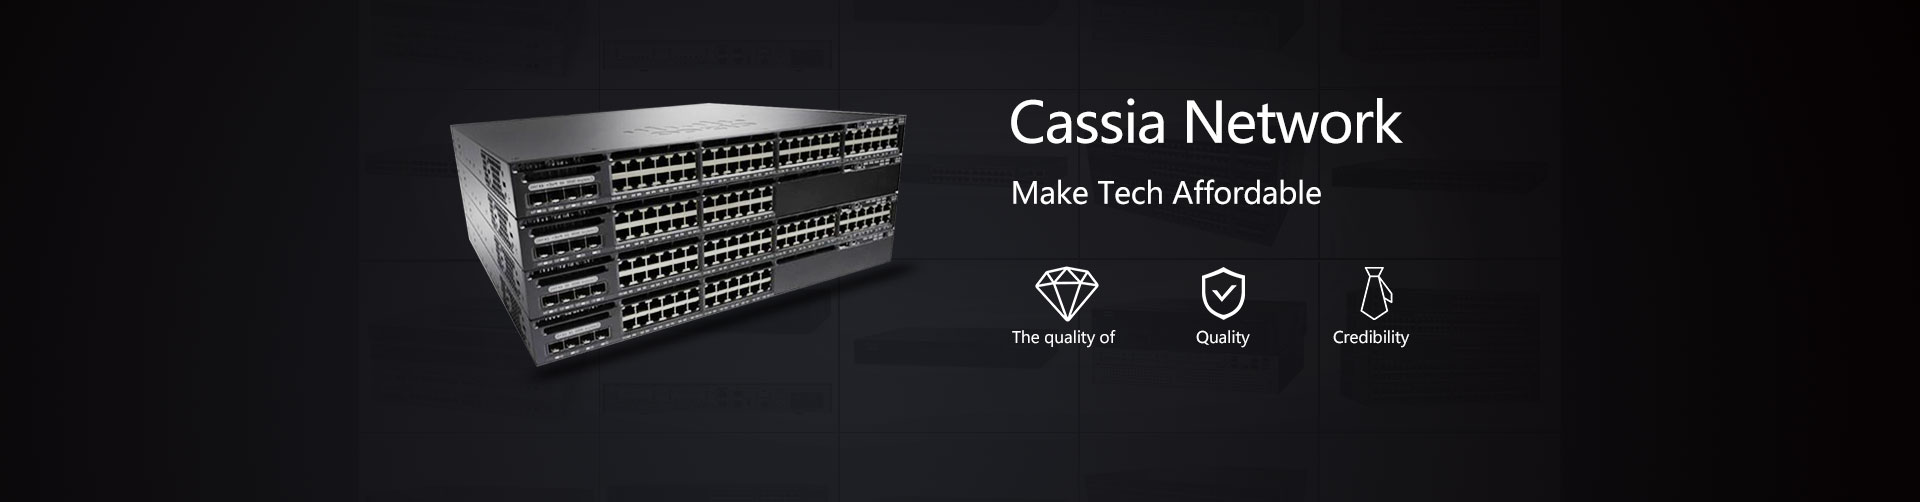 Reputable Cisco Distributor - Cassia Network. Cisco Router and Switch with Excellent Price.